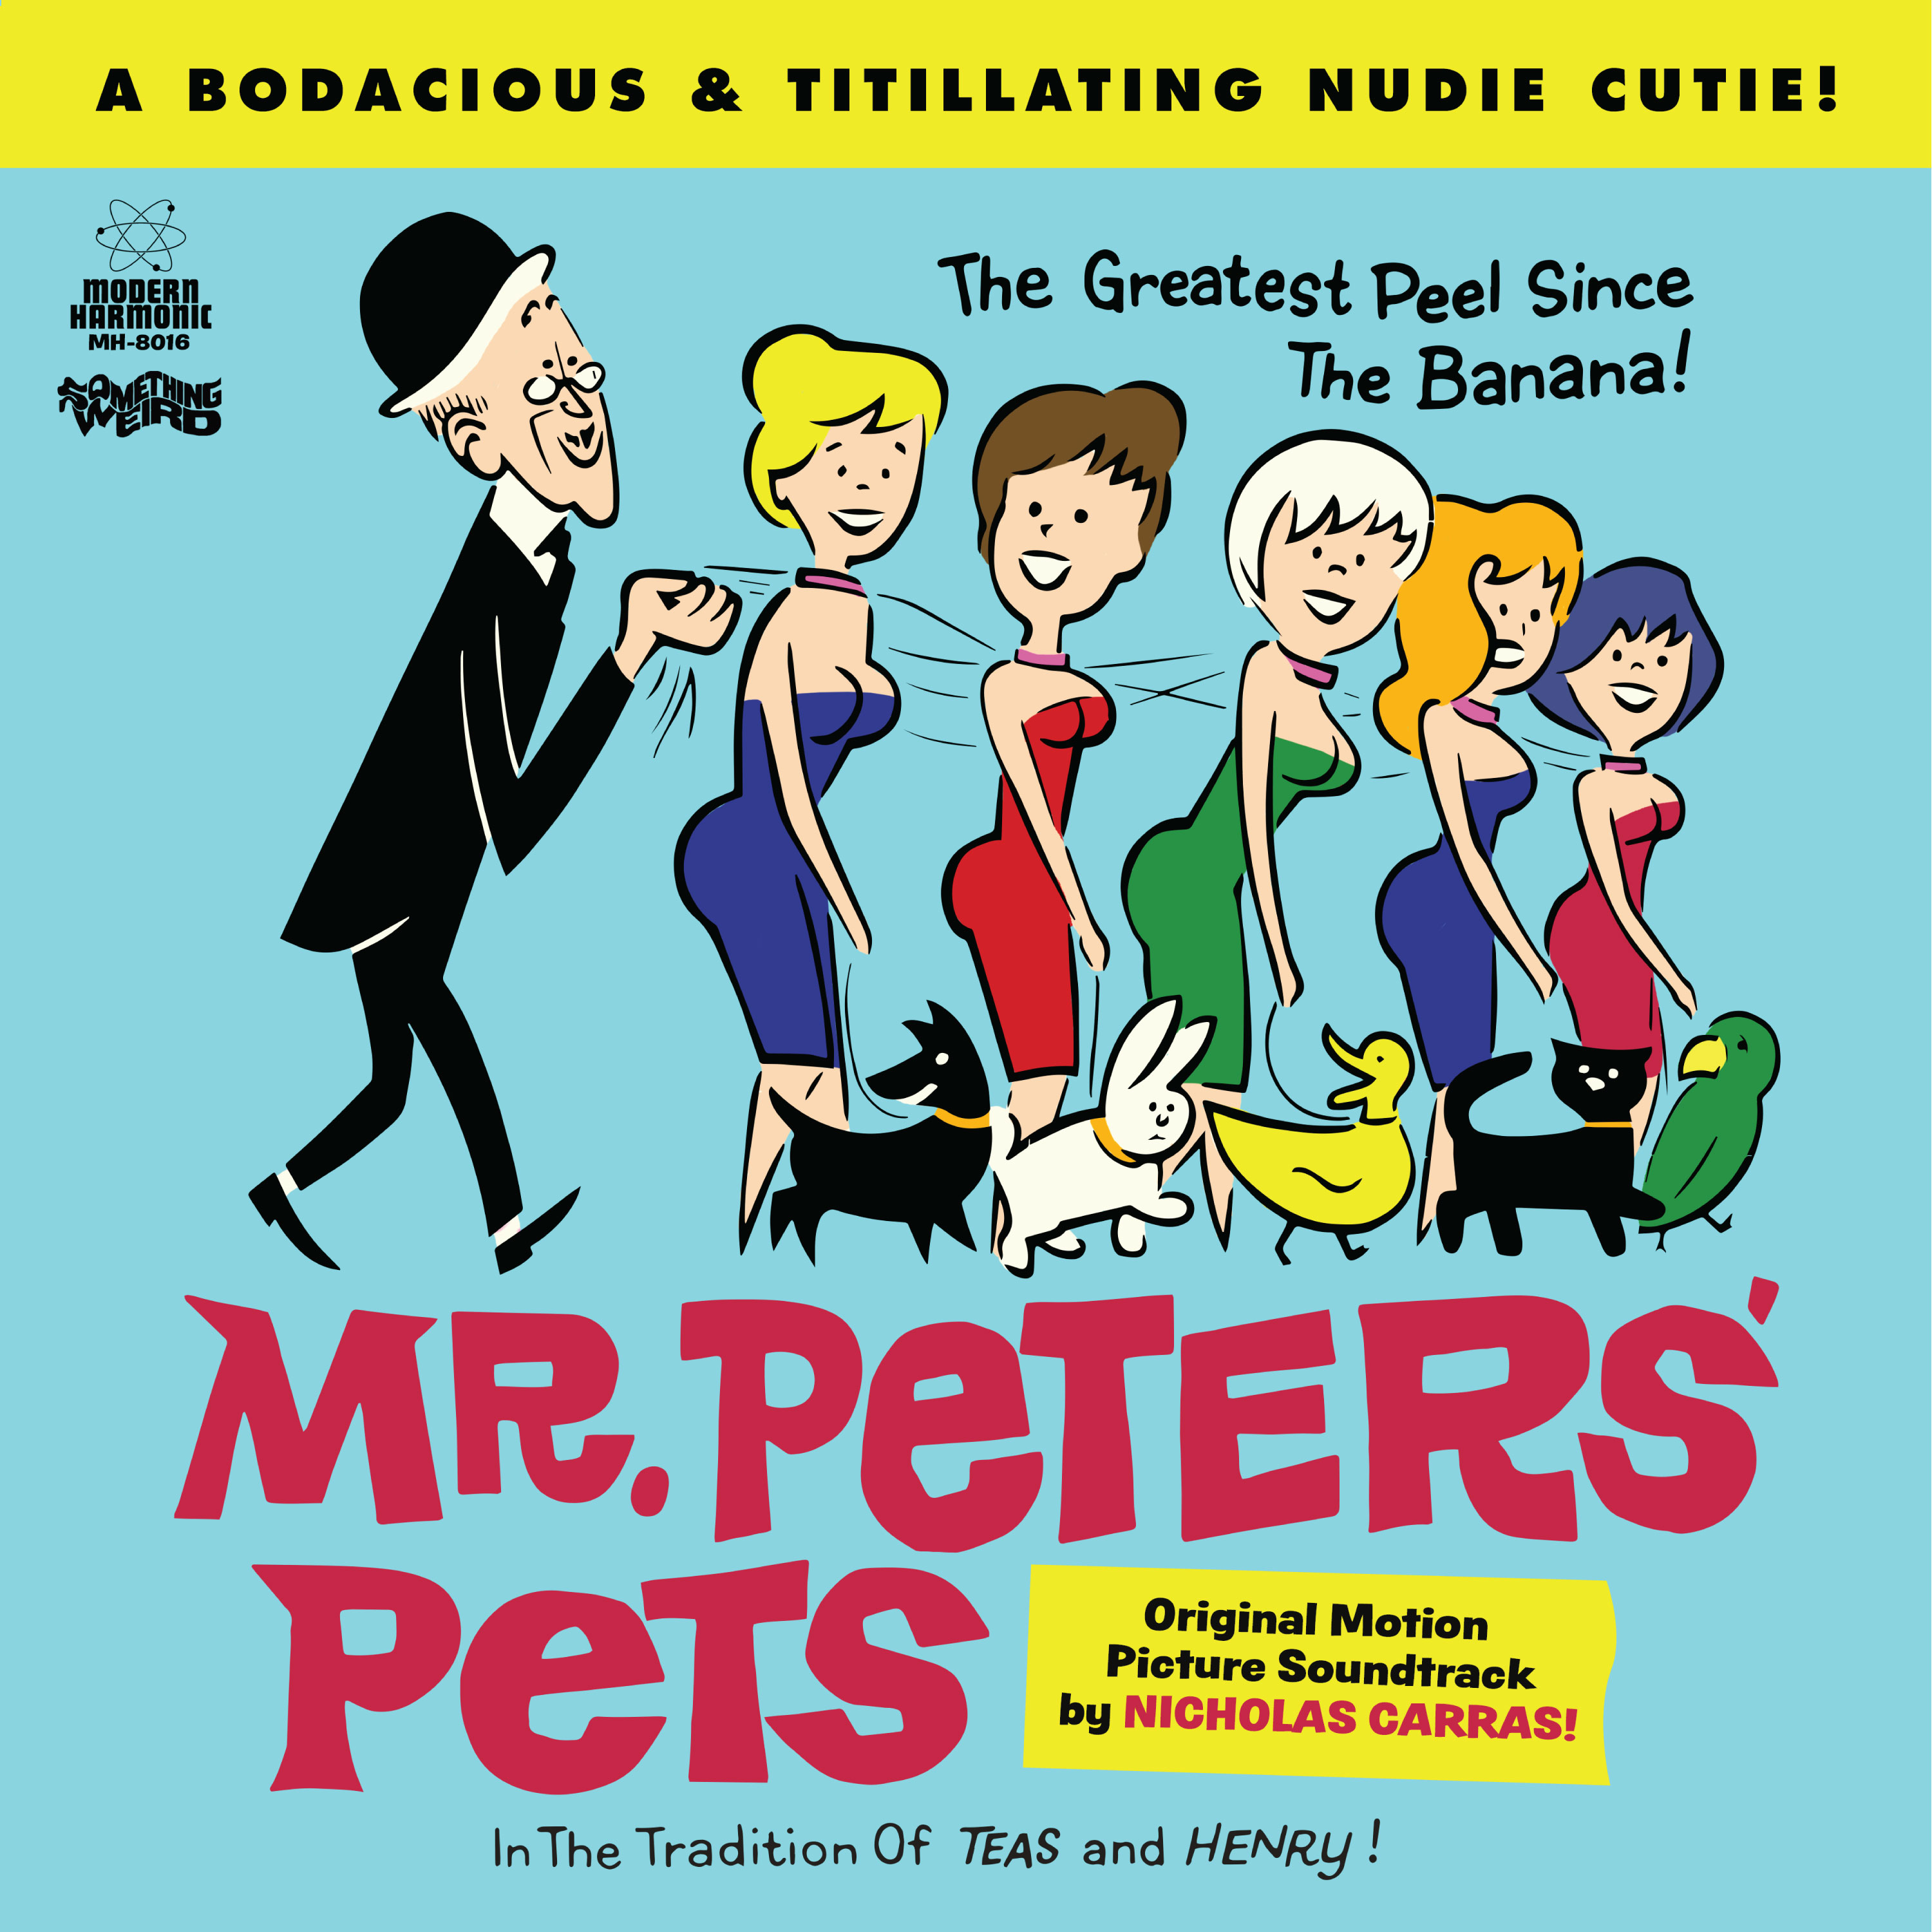 Carras, Nicholas - Mr. Peters' Pets - LP